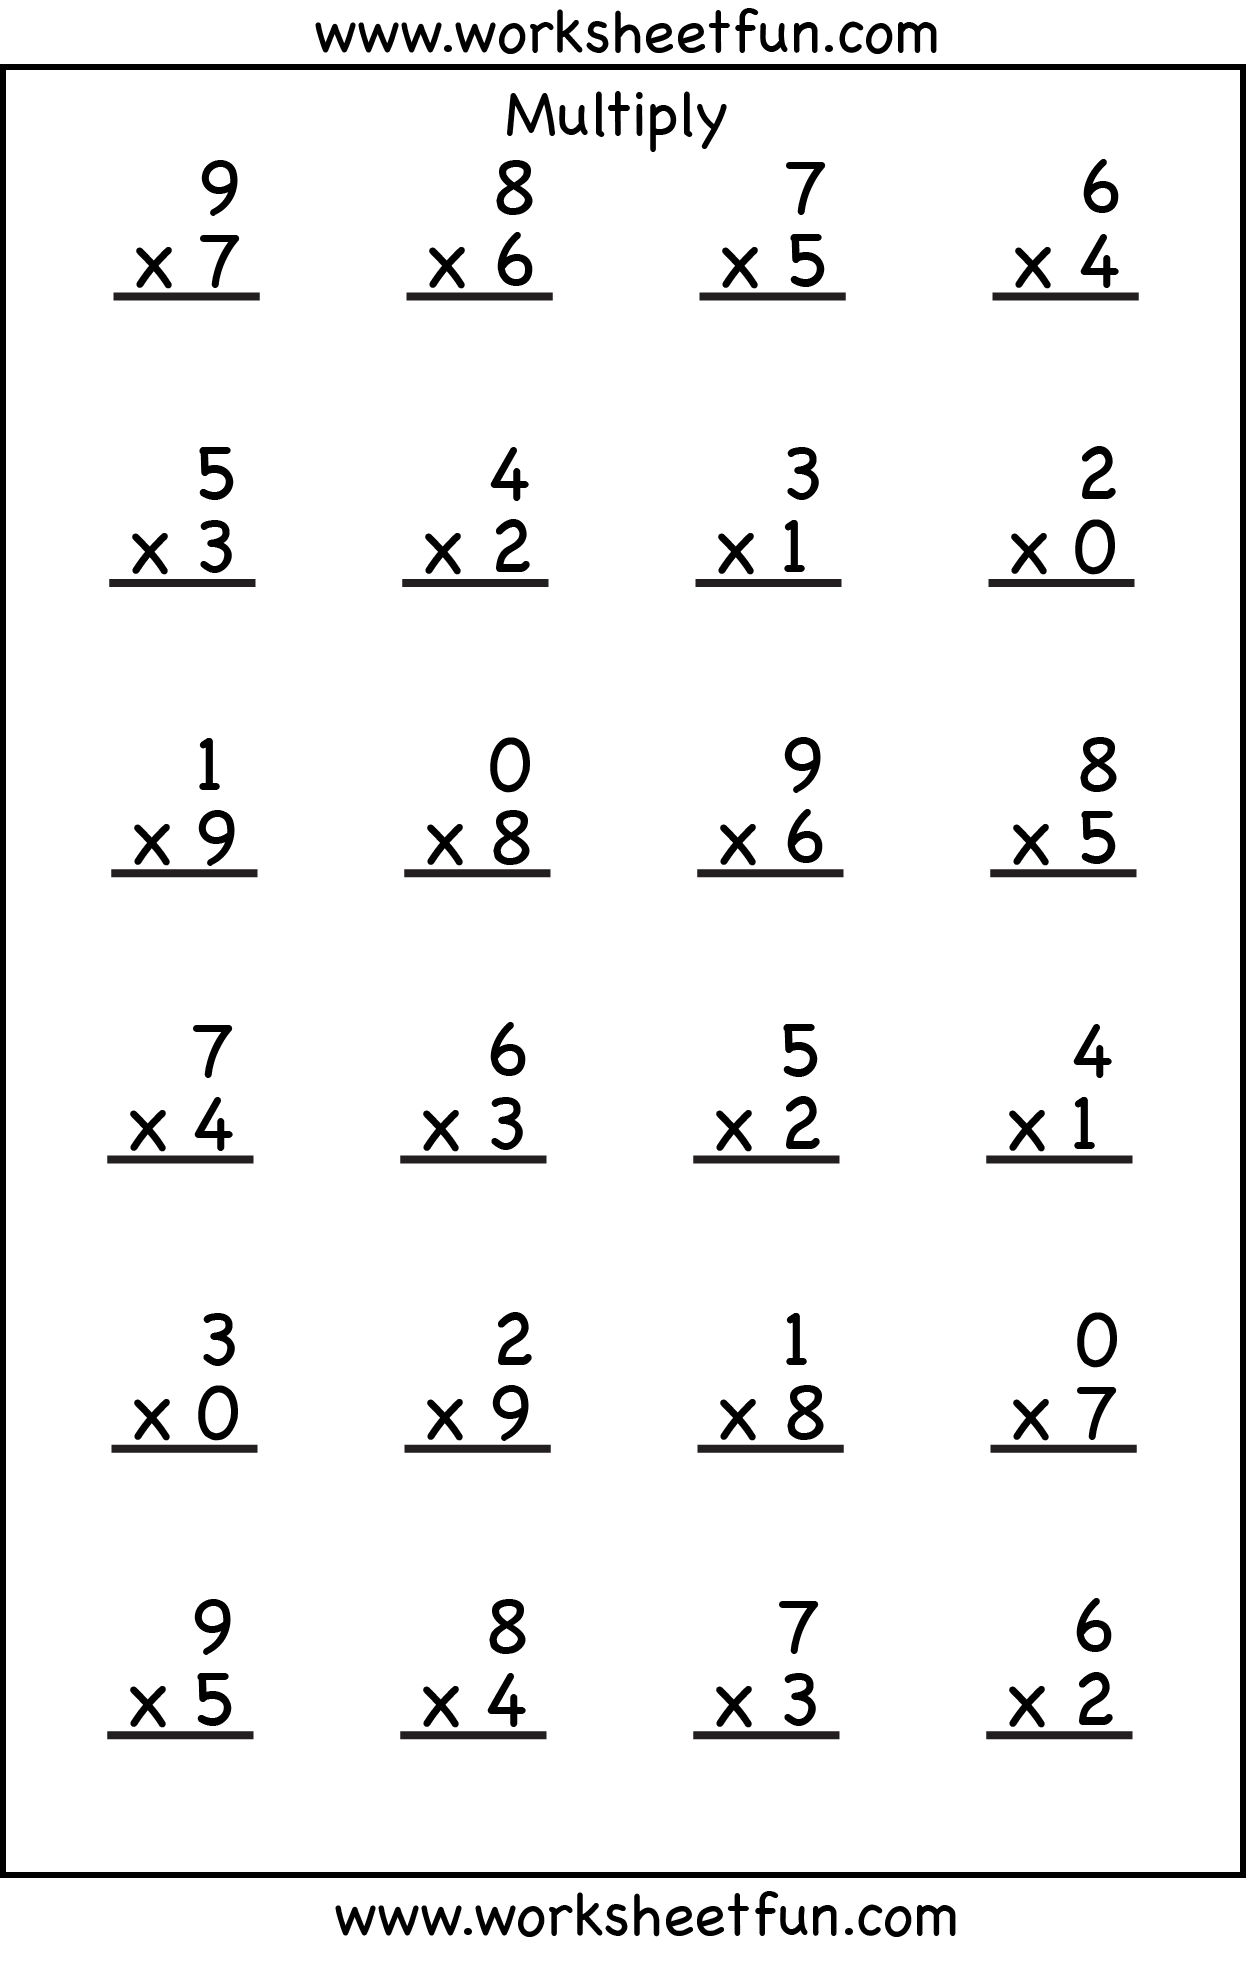 math worksheet : 7 best images of printable multiply by 4 worksheet  printable  : 2 X 1 Digit Multiplication Worksheet